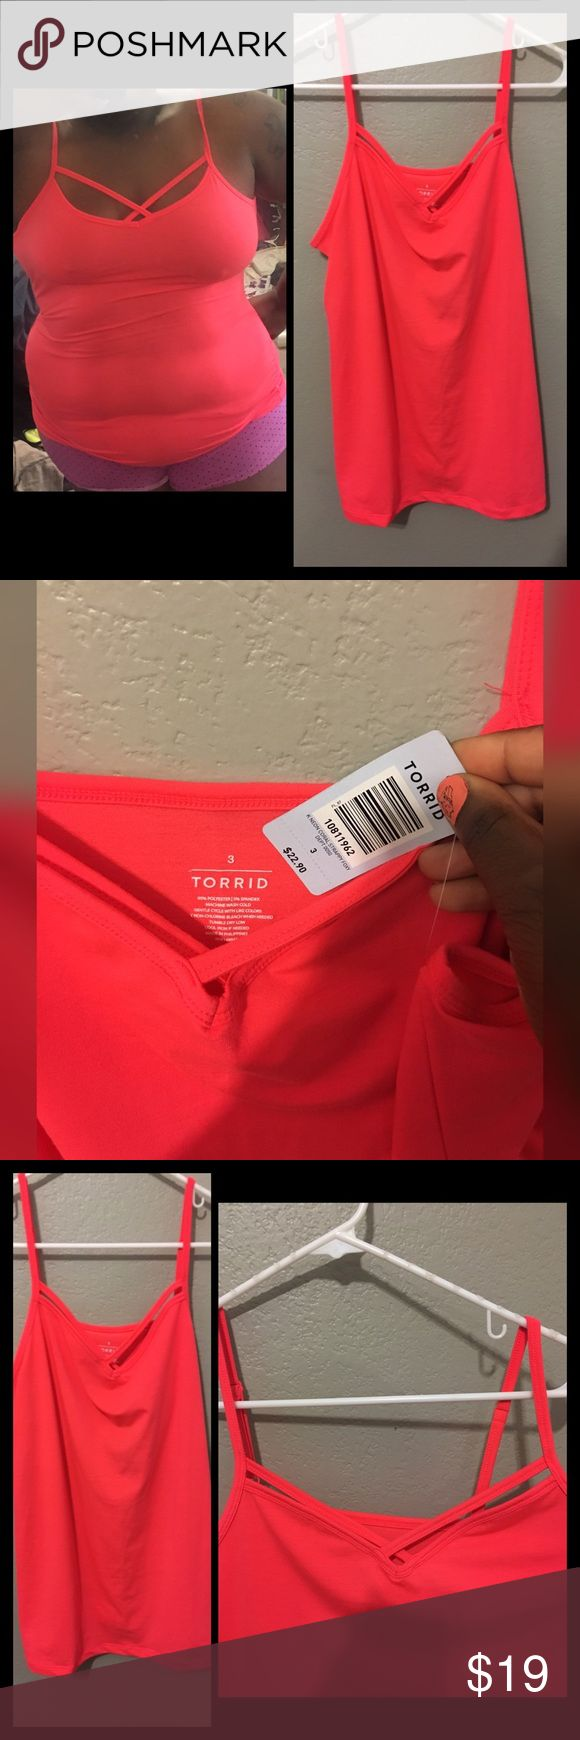 Torrid strappy cami size 3 Purchased from torrid size 3 soft stretchy material coral orange red neon color with strappy chest design brand new with tags never worn paid full price so Price Is Firm Sold out online torrid Tops Camisoles